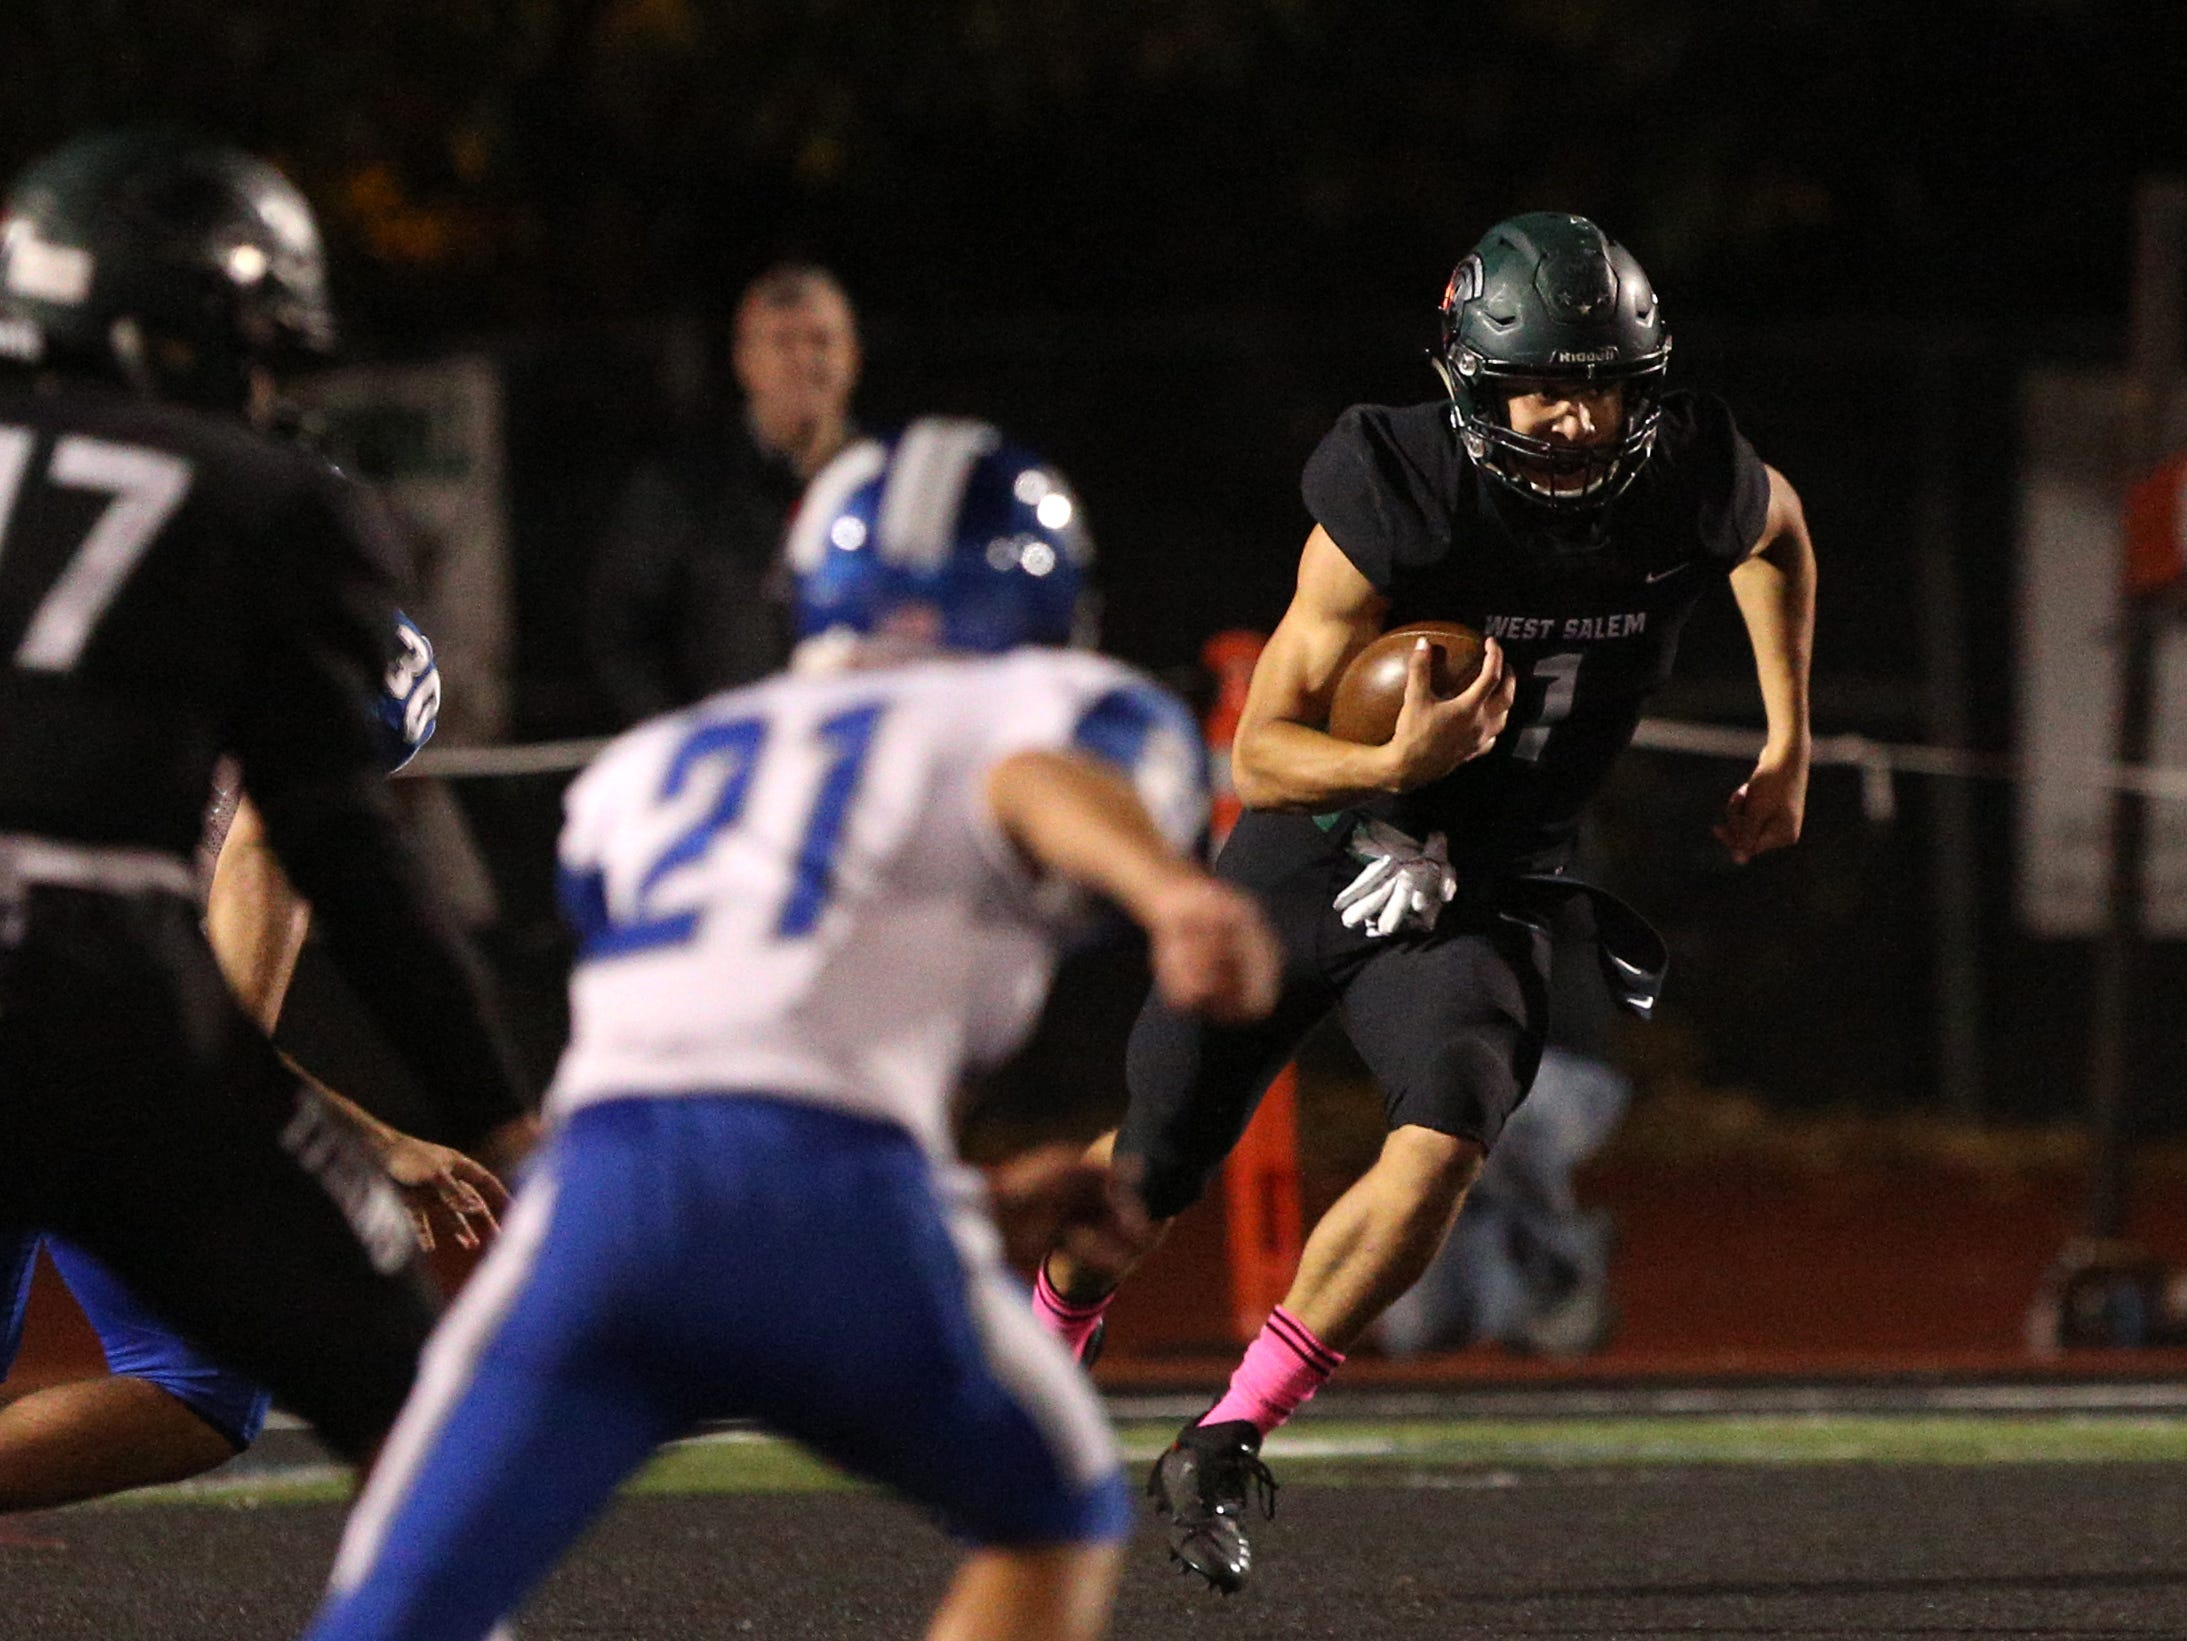 West Salem's Simon Thompson (1) runs the ball in during the first half of the McNary vs. West Salem football game at West Salem High School on Friday, Oct. 19.